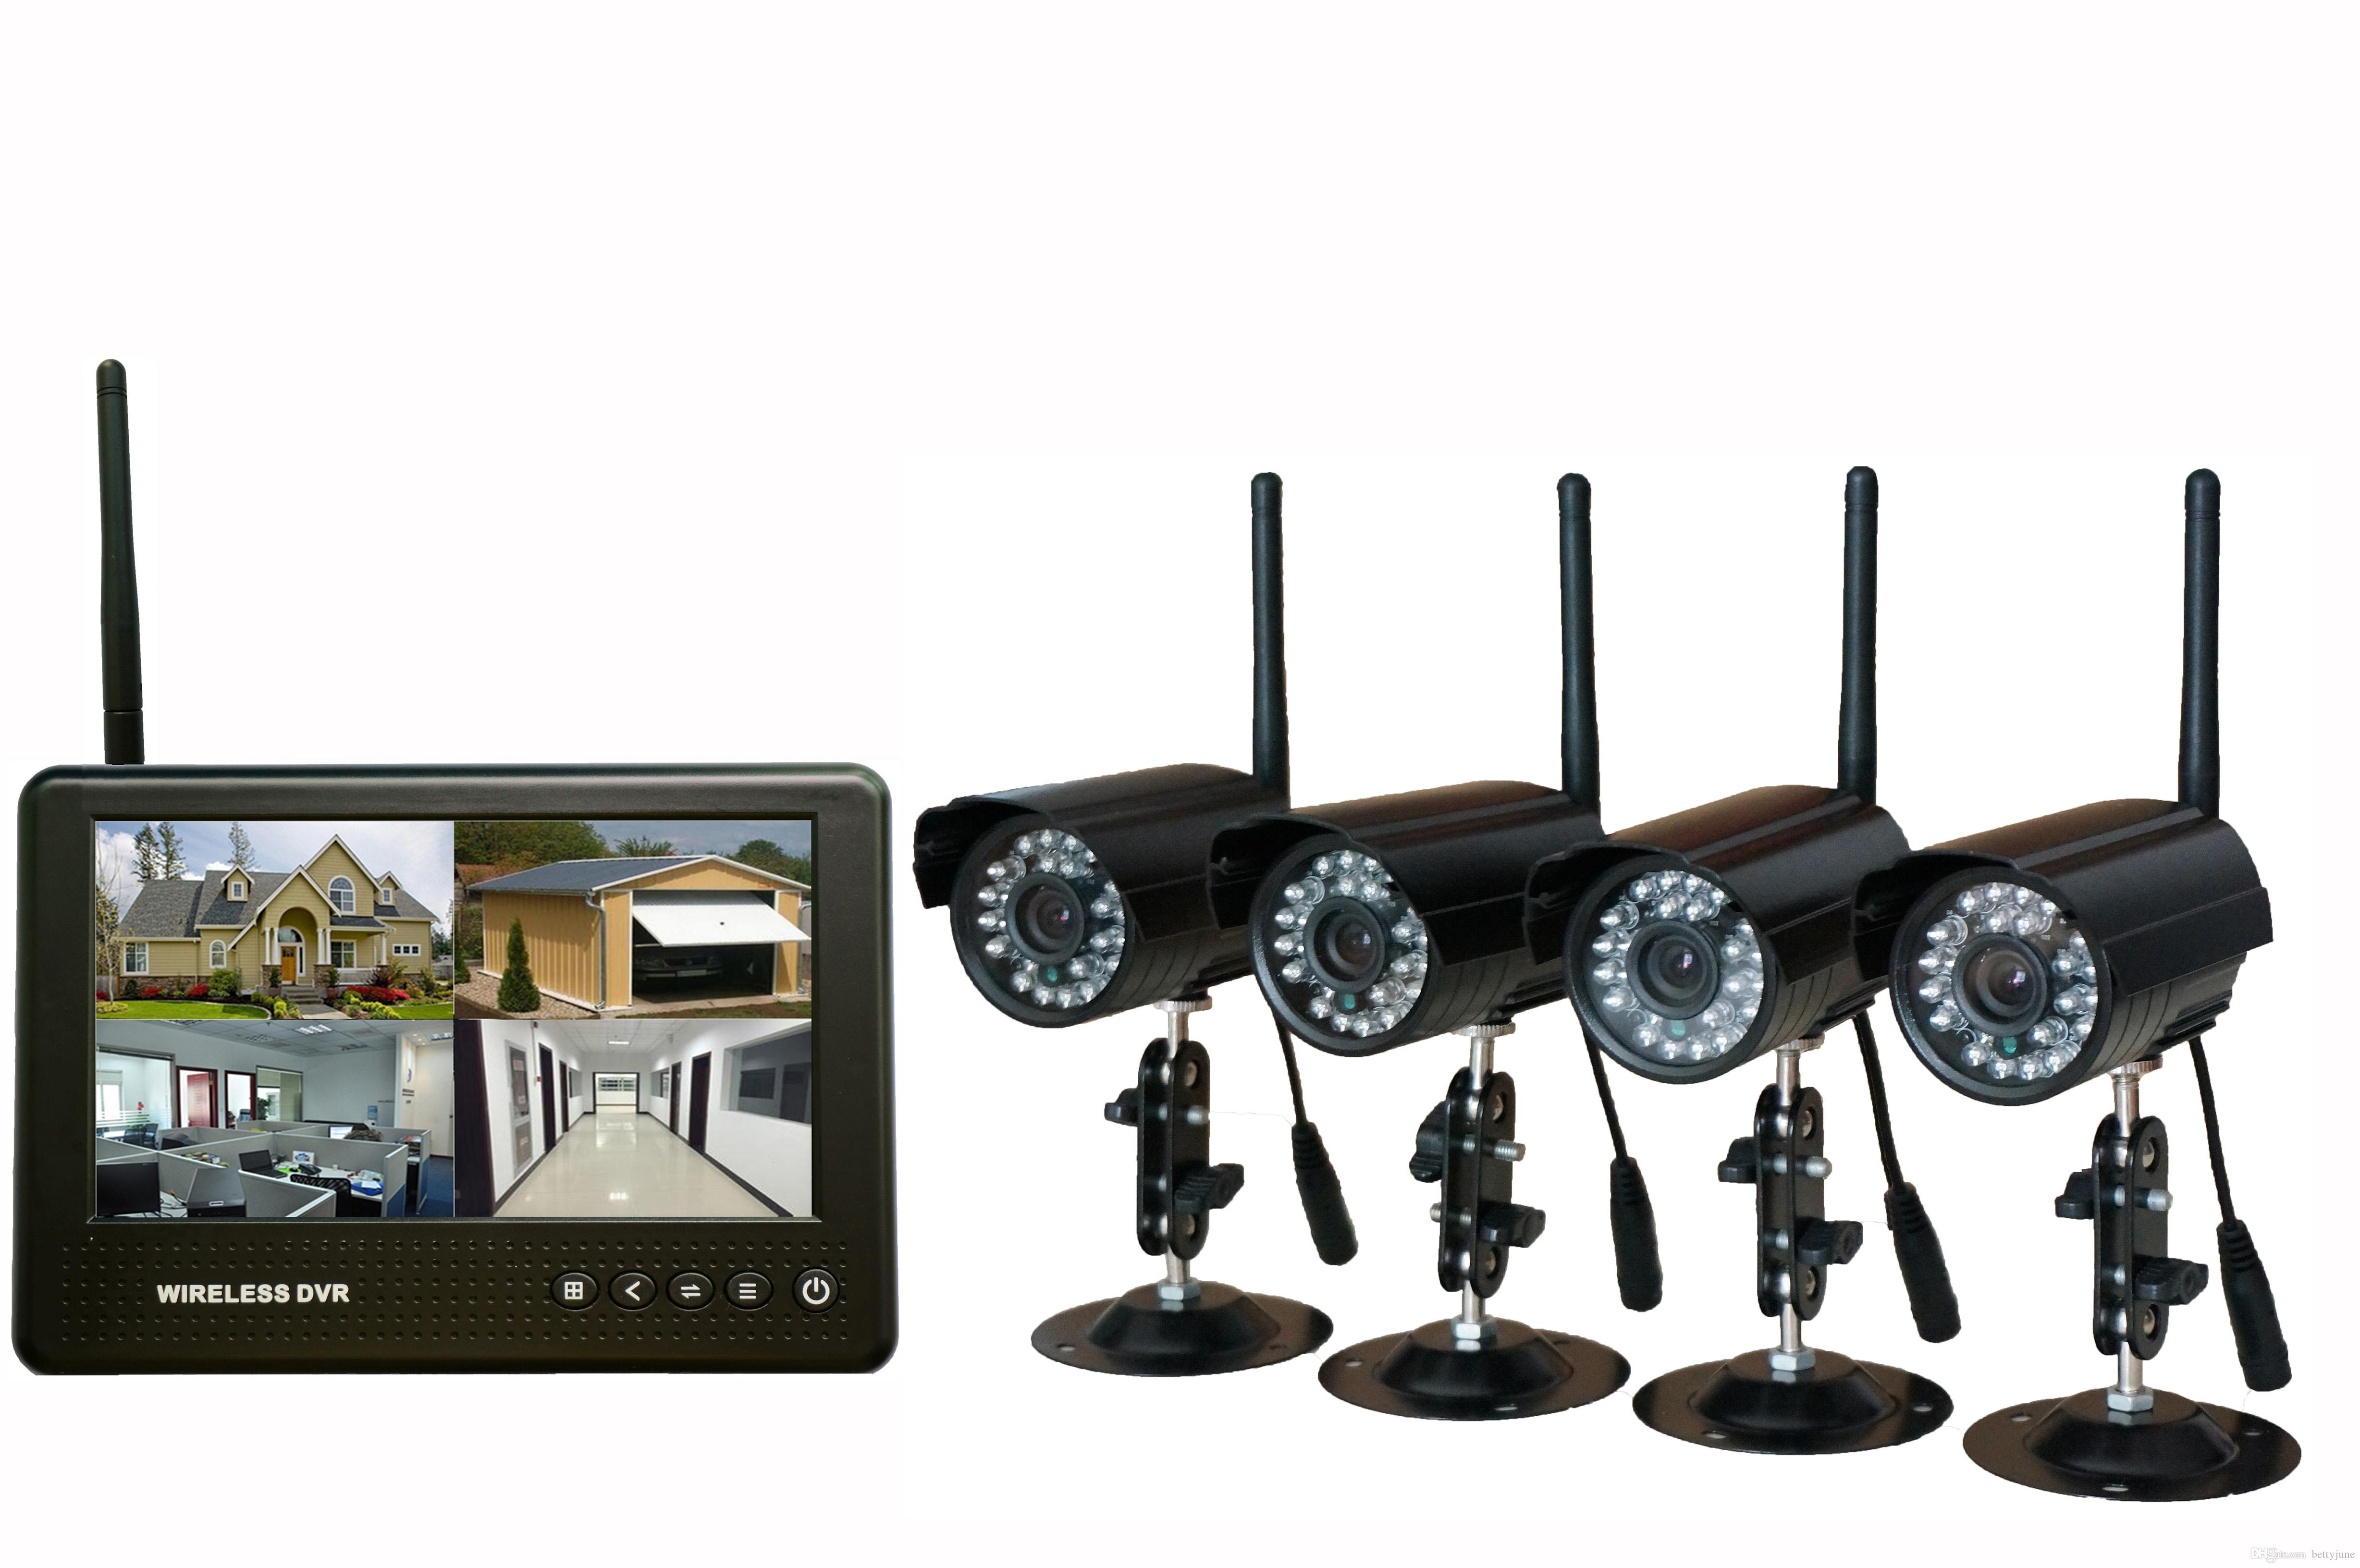 Online Home Security Systems Shop Online Wireless Anti